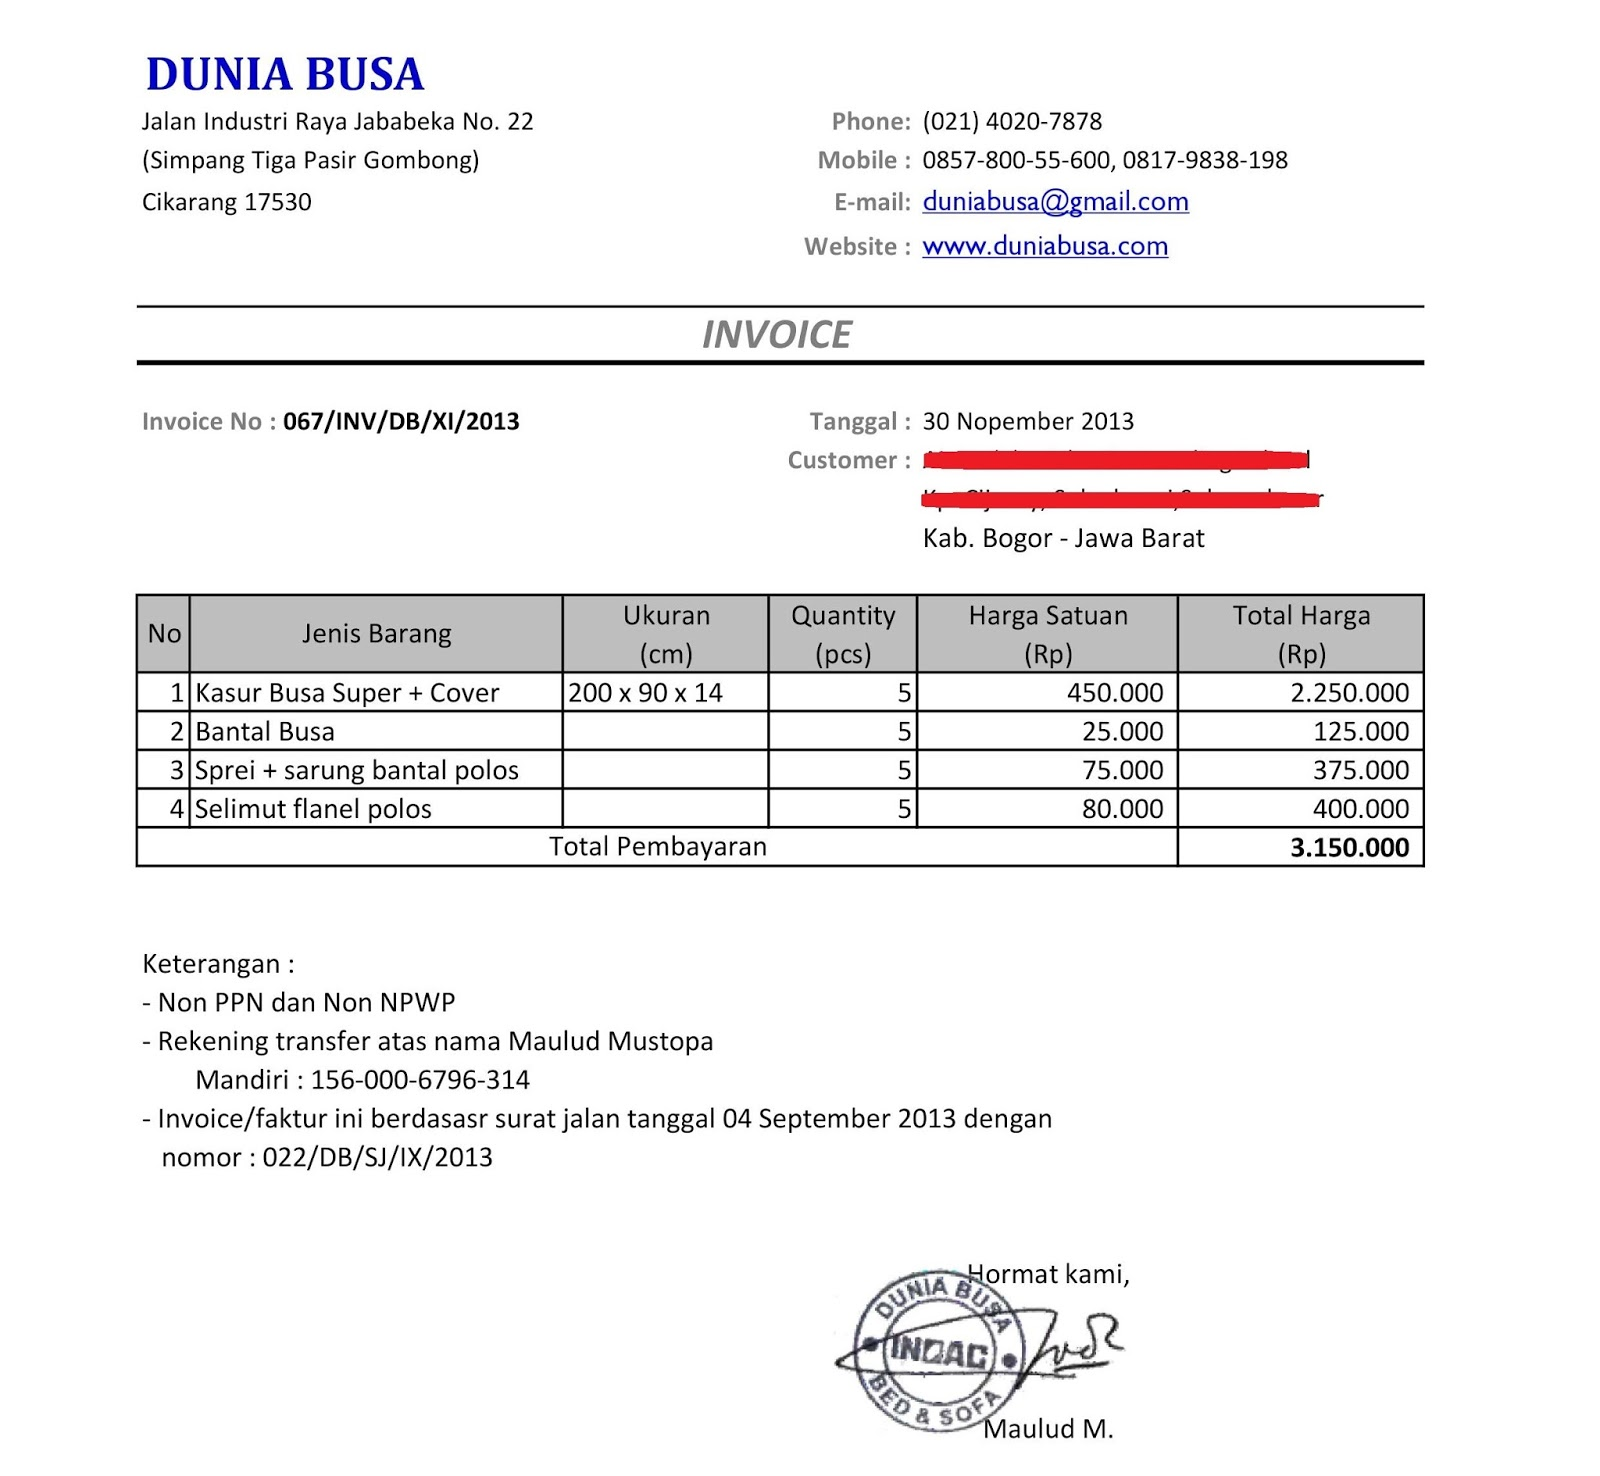 Usdgus  Scenic Free Invoice Online  Create Invoice Online  Invoice Template  With Great Contoh Format Invoice Atau Surat Tagihan  Brankas Arsip  Free Invoice Online With Easy On The Eye Rent Payment Receipt Sample Also Sample Receipt Template Word In Addition How To Find Tracking Number On Post Office Receipt And Rent Receipt Document As Well As What Can You Claim On Tax Without Receipts Additionally House Rent Receipt Download From Sklepco With Usdgus  Great Free Invoice Online  Create Invoice Online  Invoice Template  With Easy On The Eye Contoh Format Invoice Atau Surat Tagihan  Brankas Arsip  Free Invoice Online And Scenic Rent Payment Receipt Sample Also Sample Receipt Template Word In Addition How To Find Tracking Number On Post Office Receipt From Sklepco